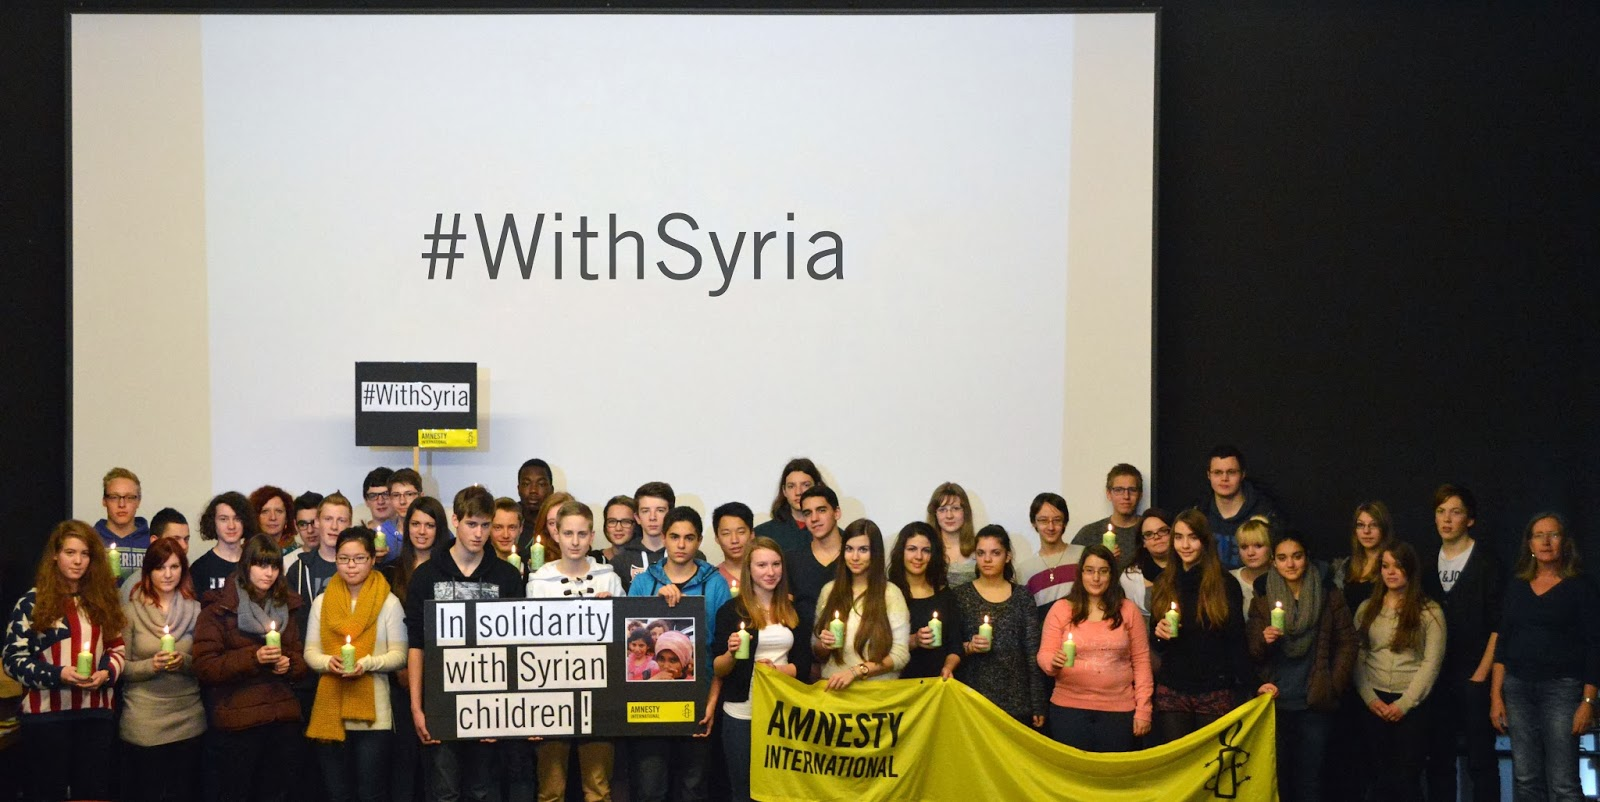 http://amnesty-luxembourg-photos.blogspot.com/2014/02/visite-dun-refugie-syrien-riad-tereha.html